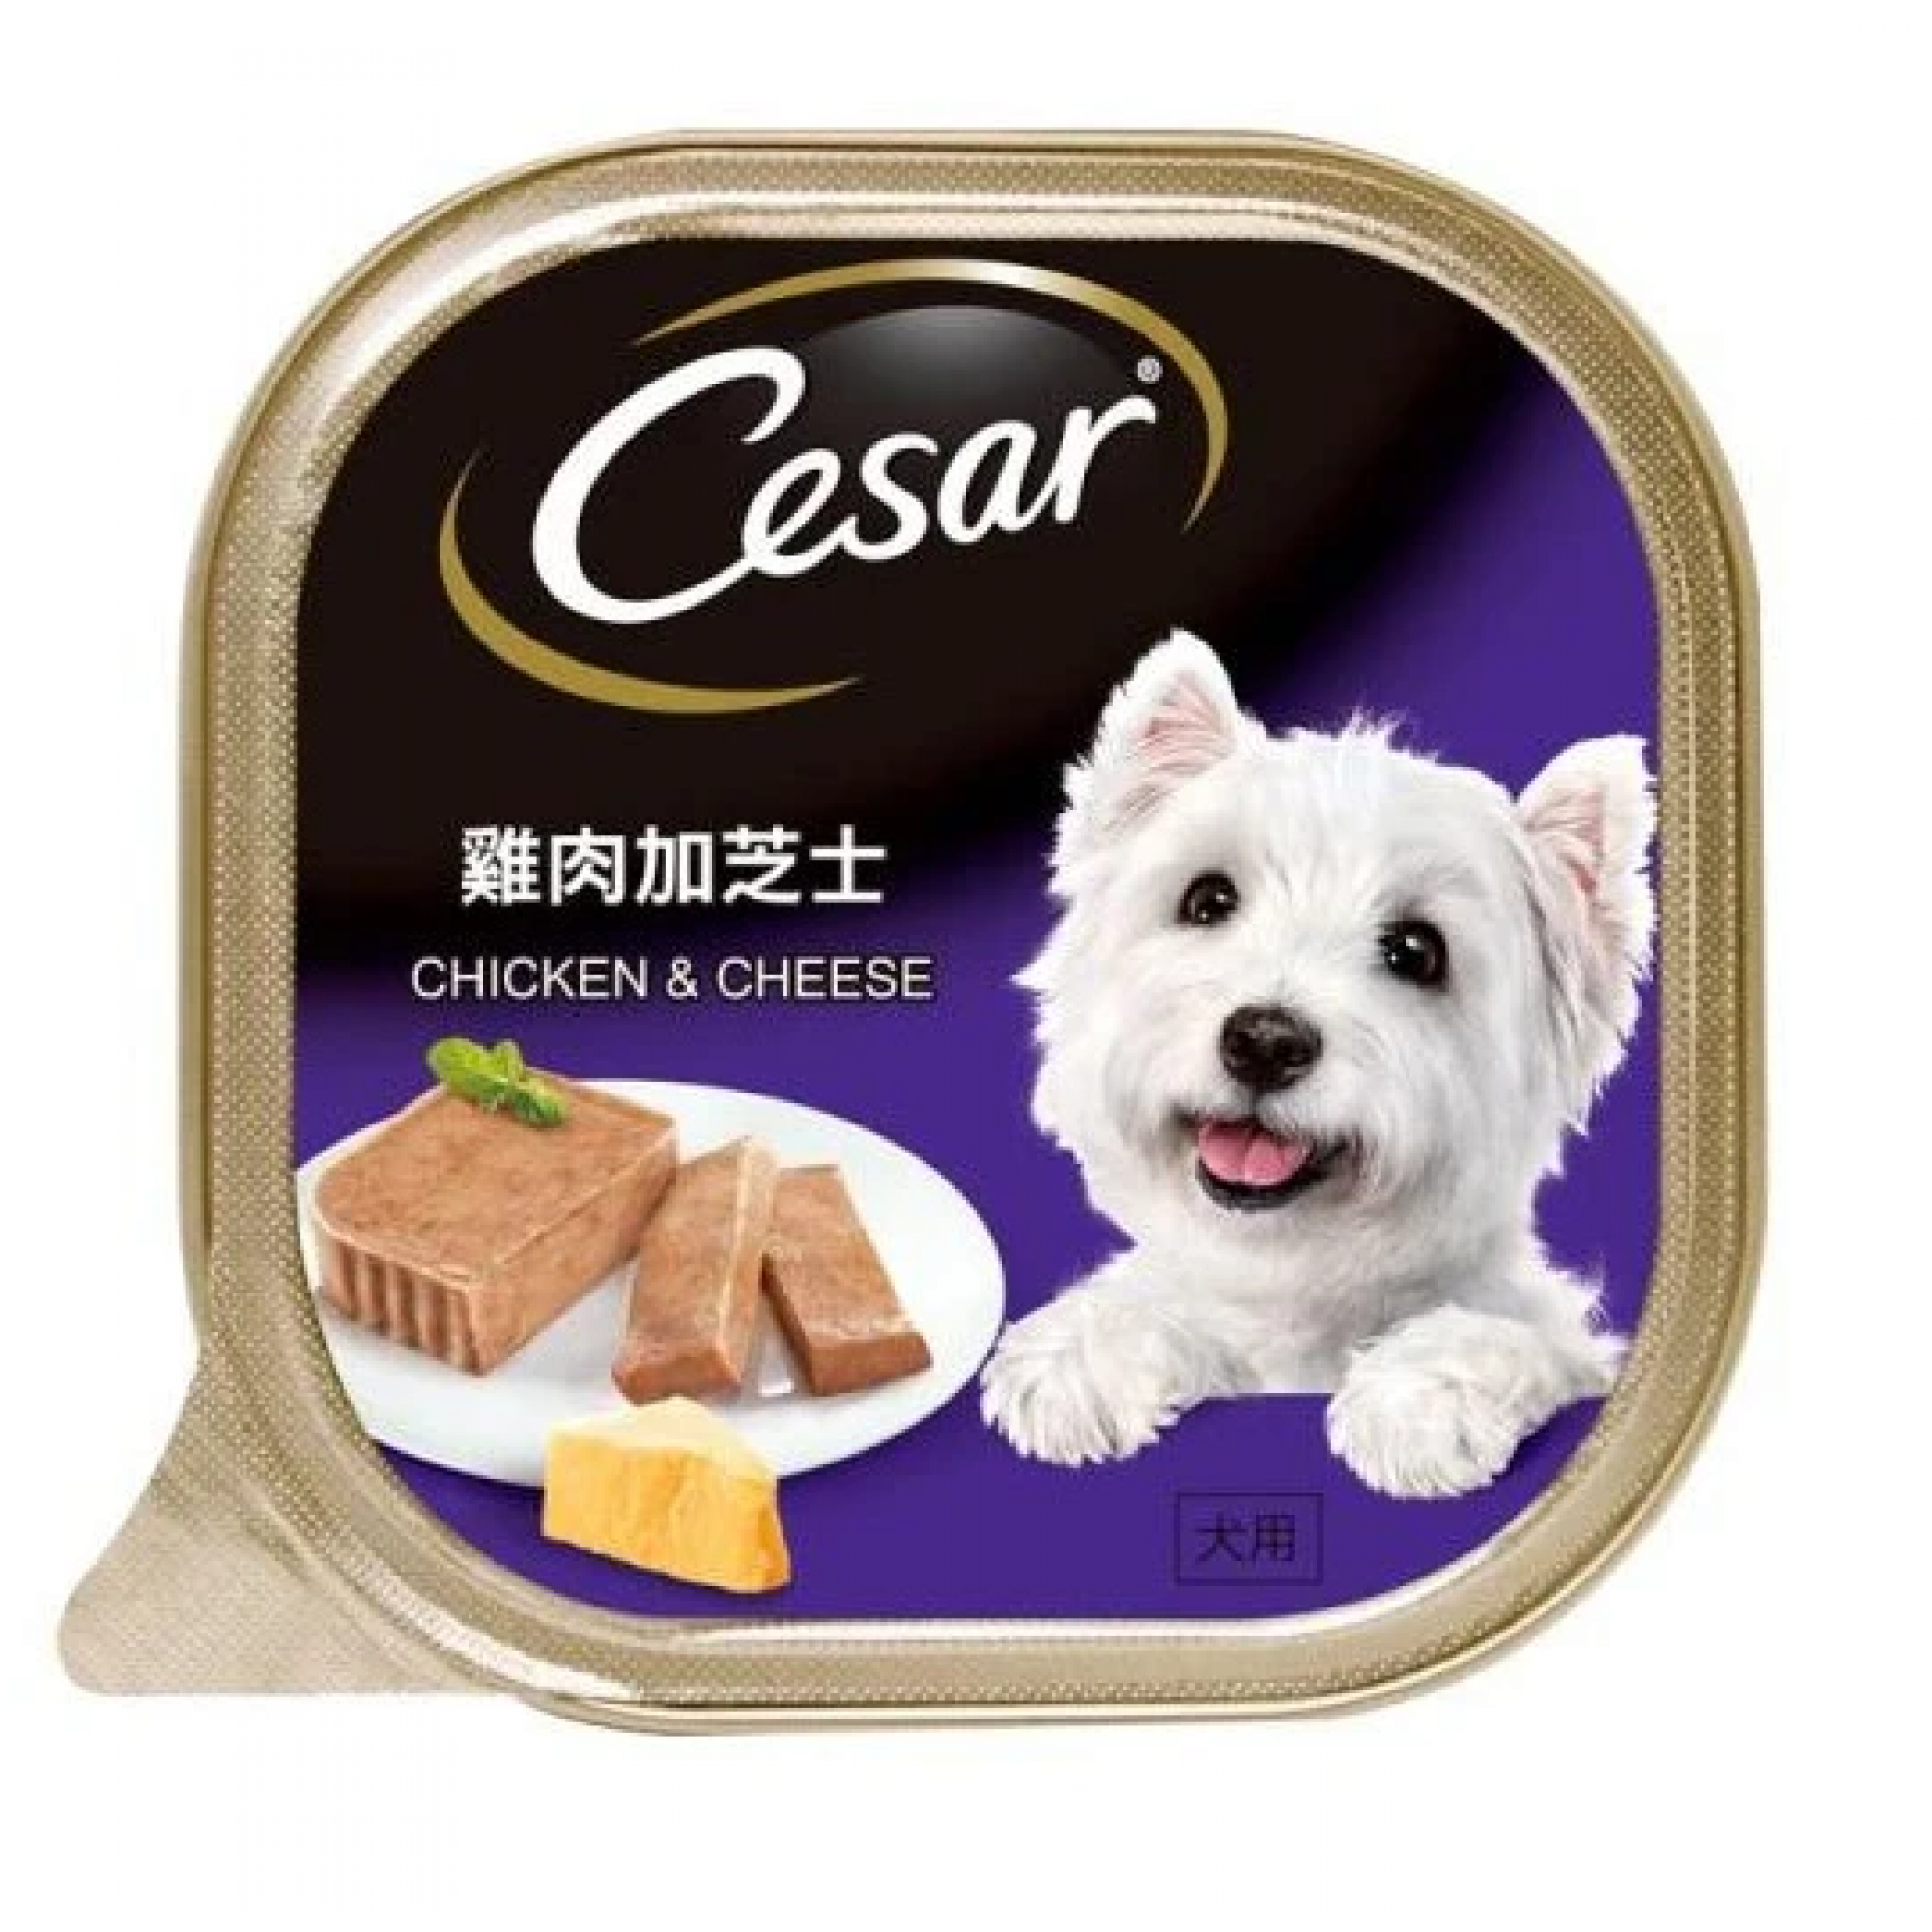 Cesar - Chicken & Cheese Pate Dog Food 100g